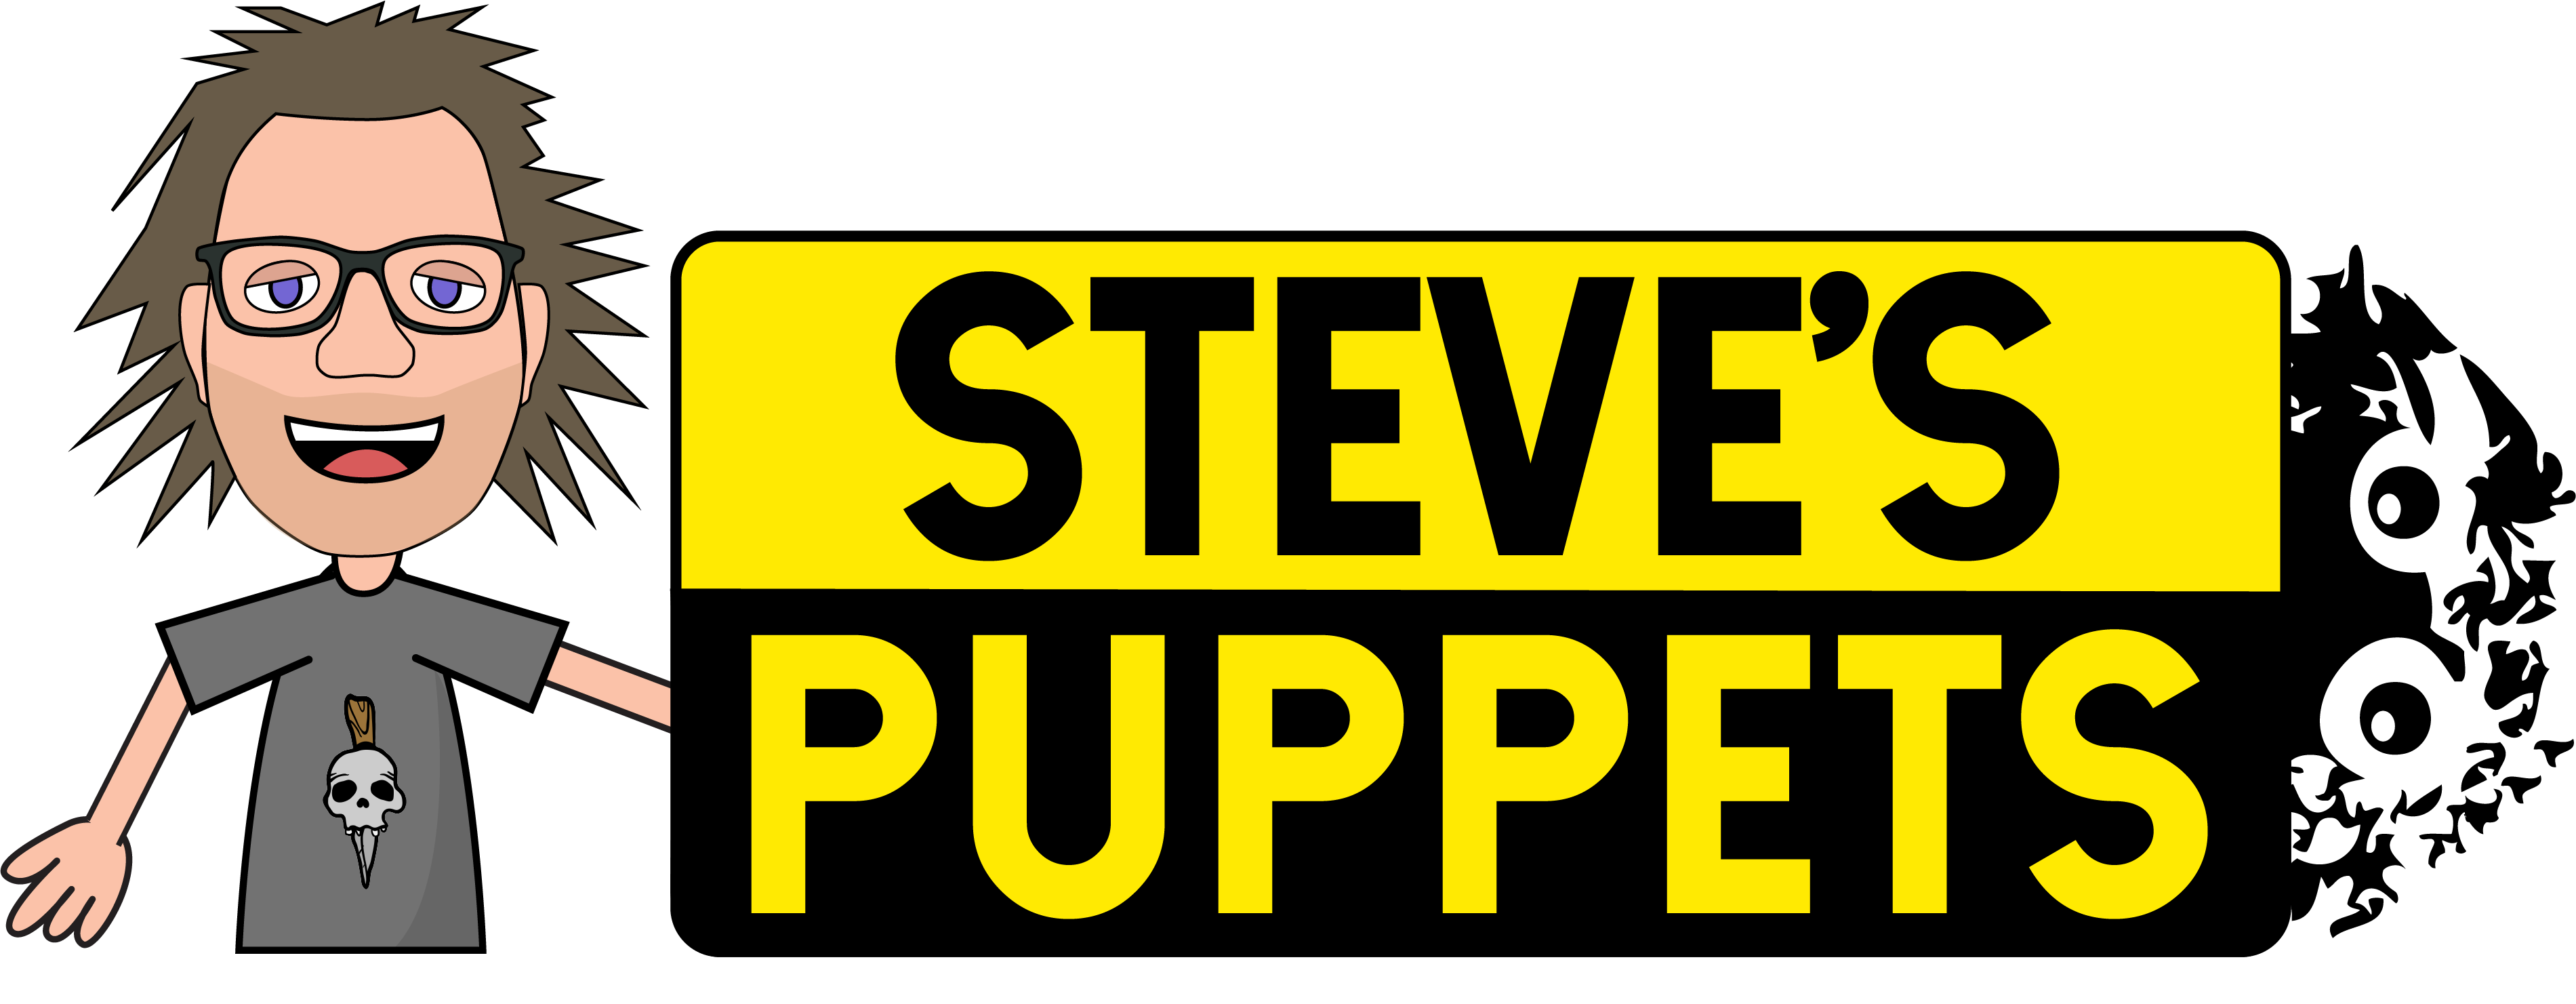 Steves Puppets